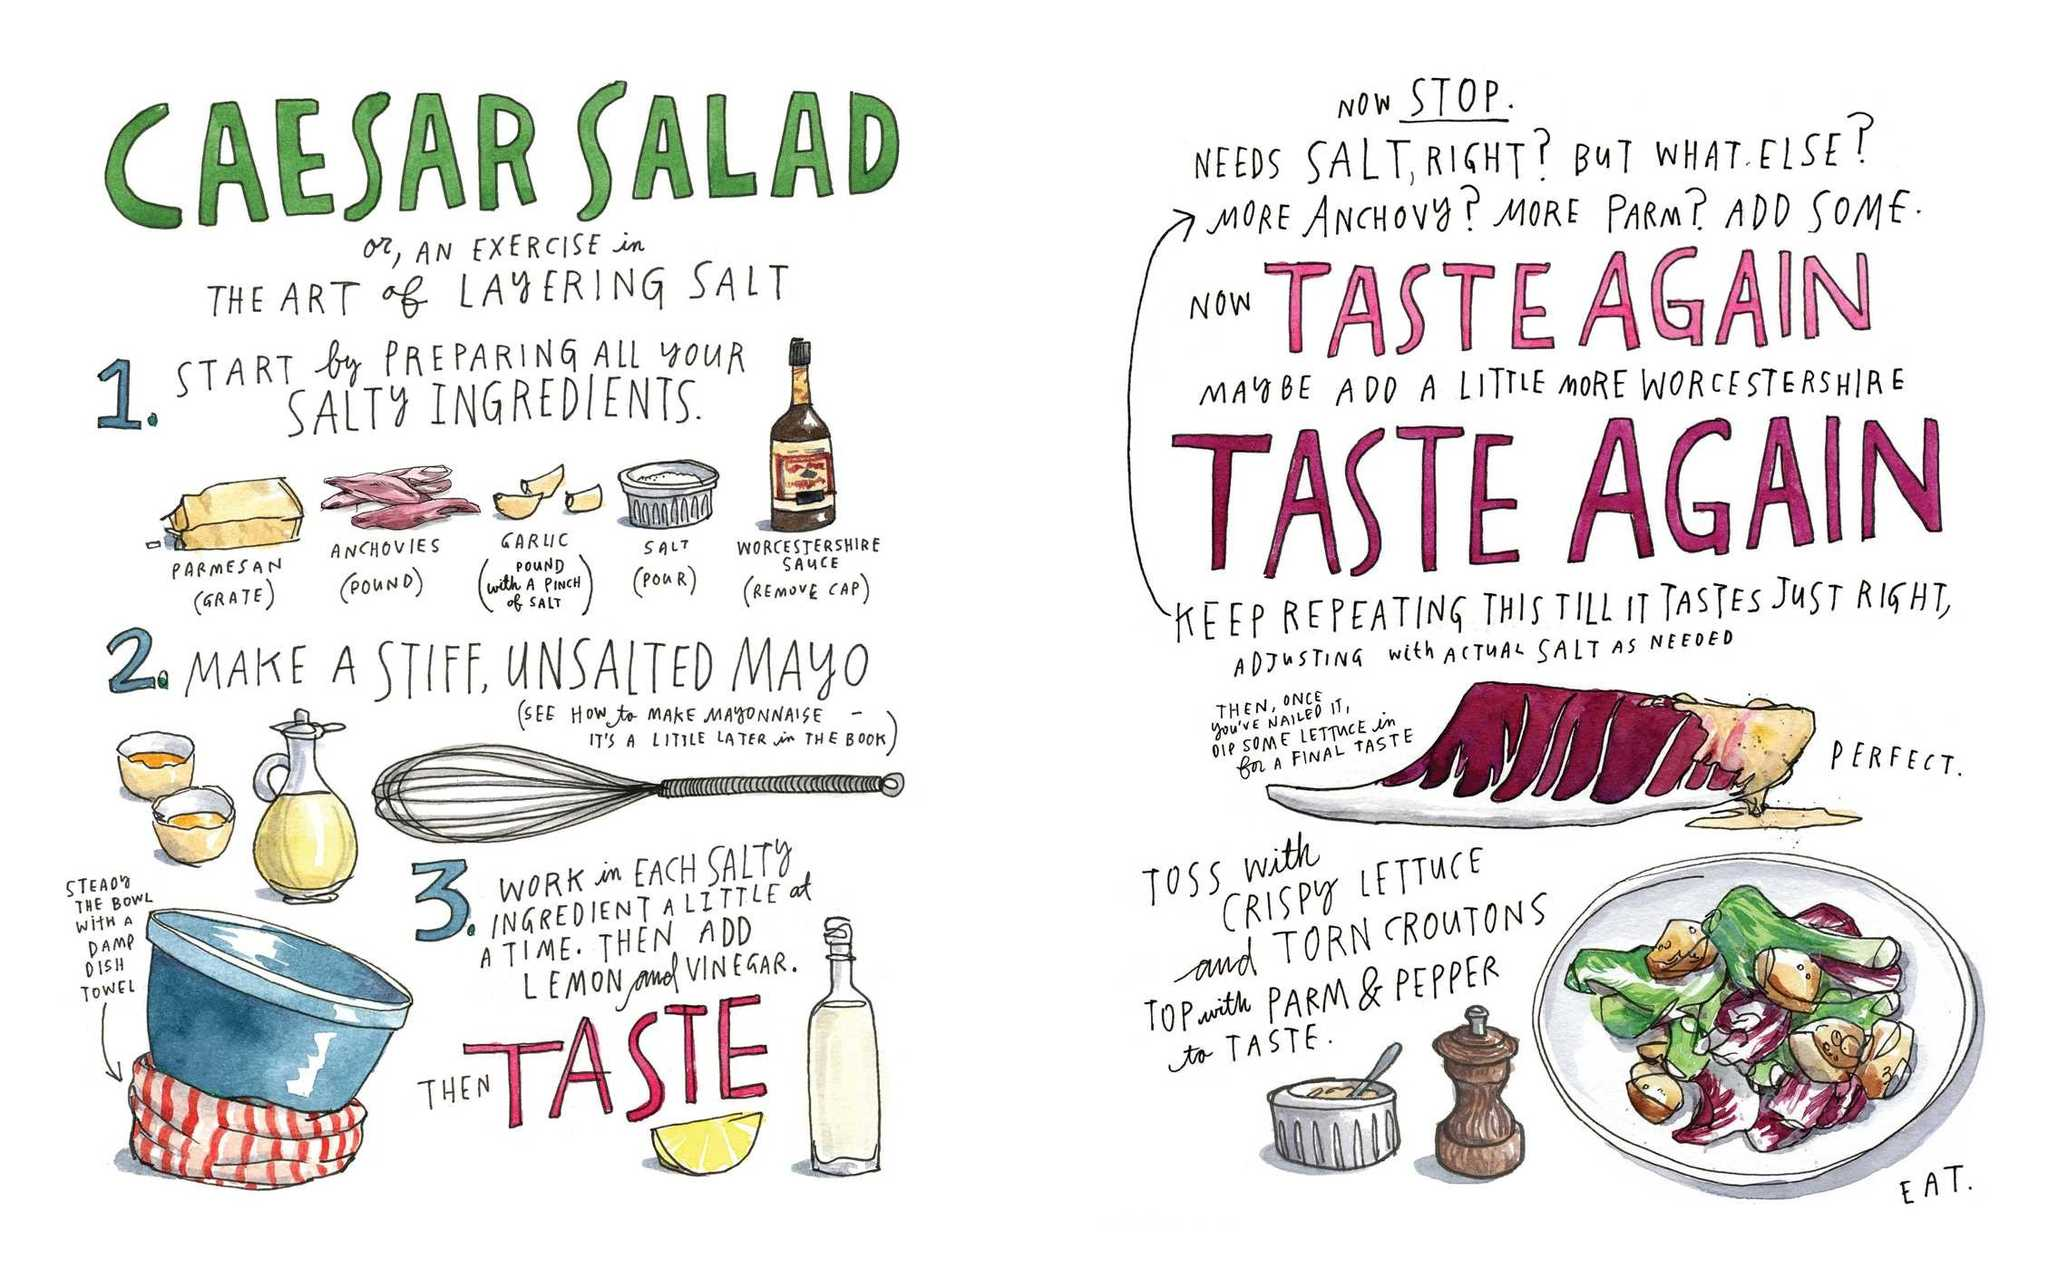 image from the excellent book salt fat acid heat